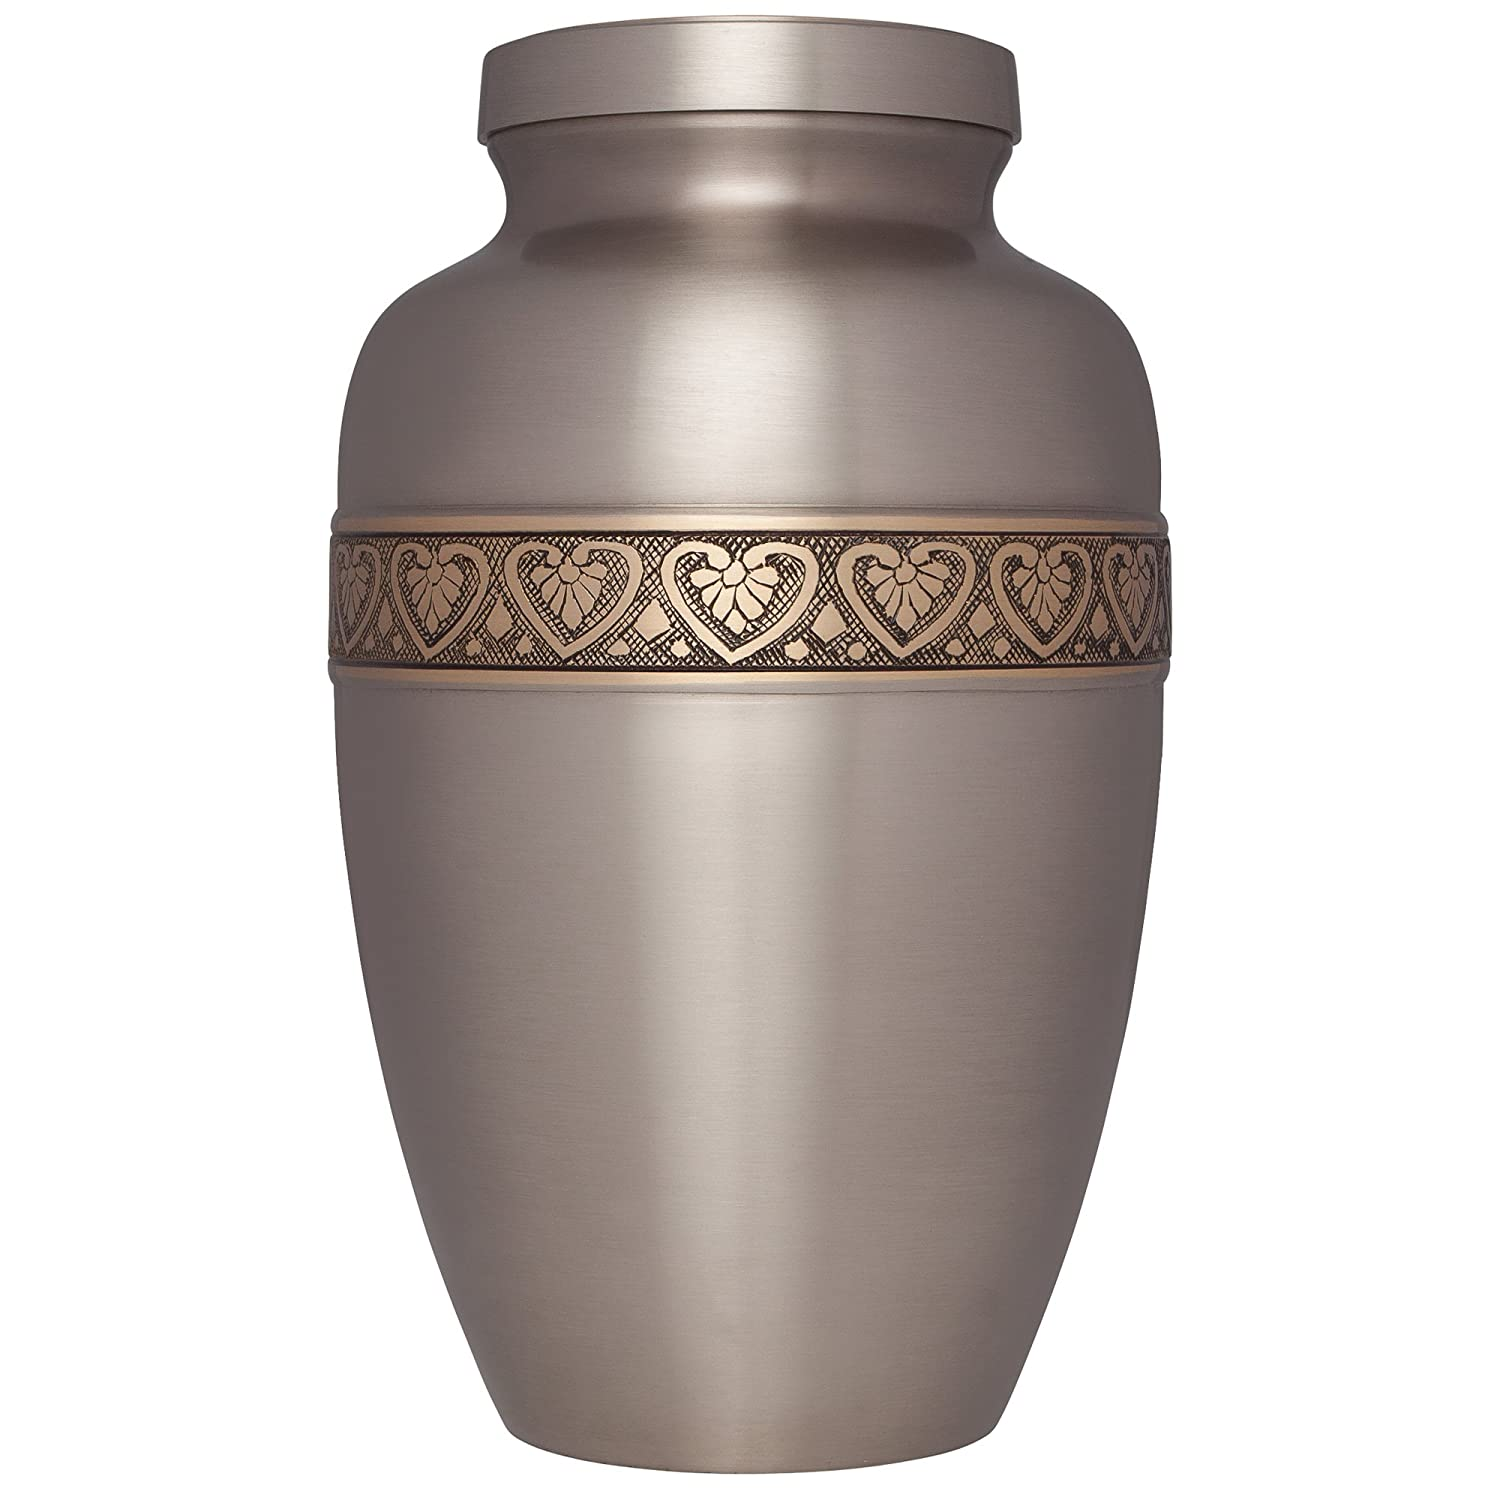 Silver Funeral Urn by Liliane Memorials - Cremation Urn for Human Ashes - Hand Made in Brass - Suitable for Cemetery Burial or Niche - Large Size fits remains of Adults up to 200 lbs - Coeur Model